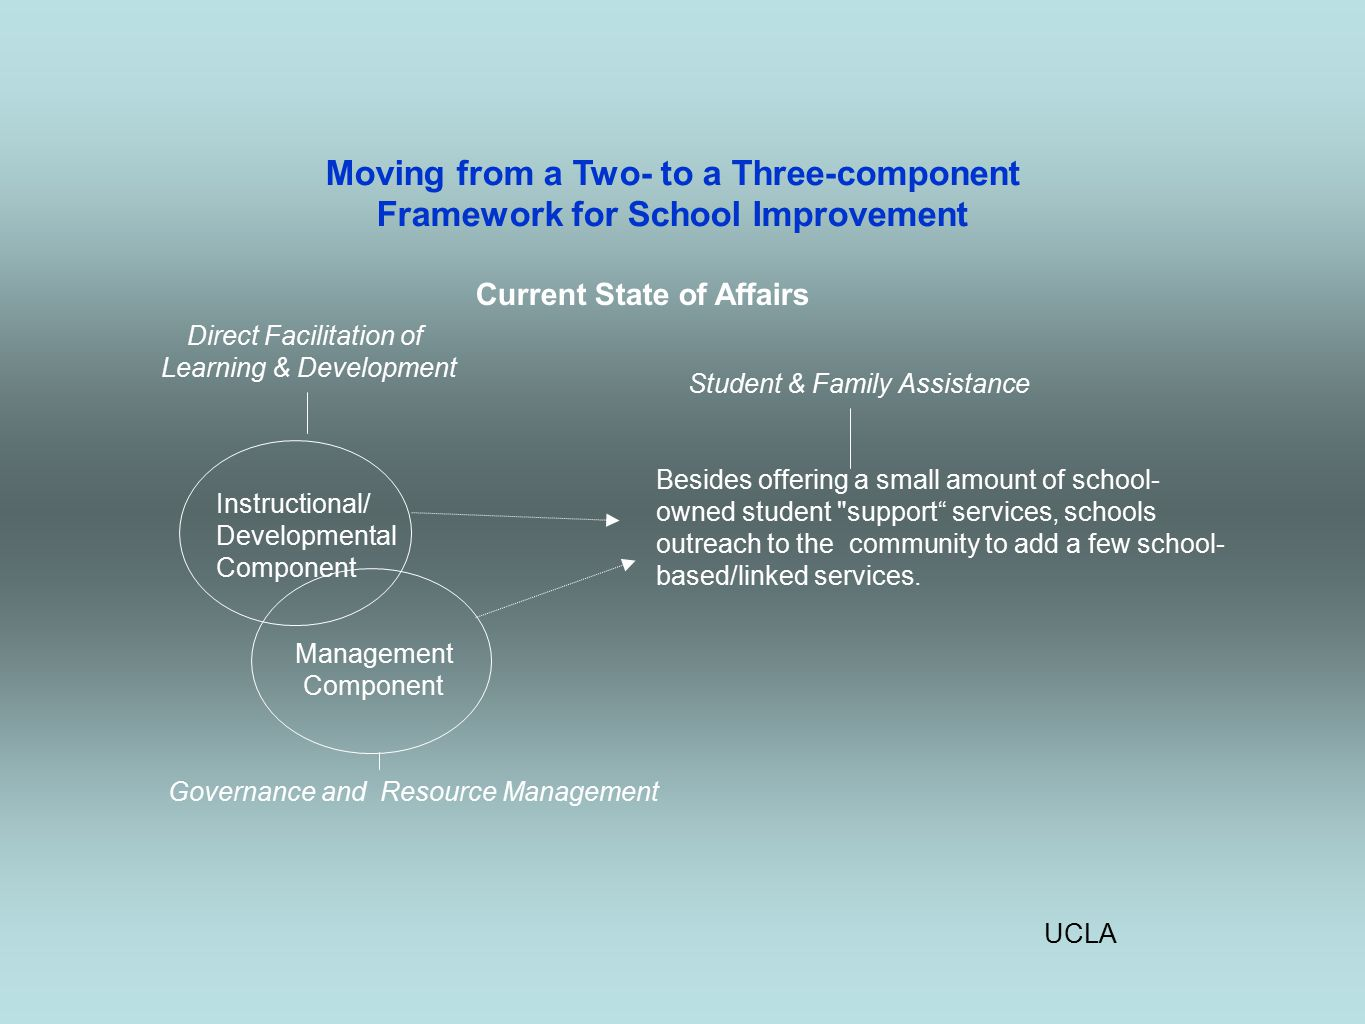 UCLA Moving from a Two- to a Three-component Framework for School Improvement Current State of Affairs Direct Facilitation of Learning & Development Student & Family Assistance Besides offering a small amount of school- owned student support services, schools outreach to the community to add a few school- based/linked services.